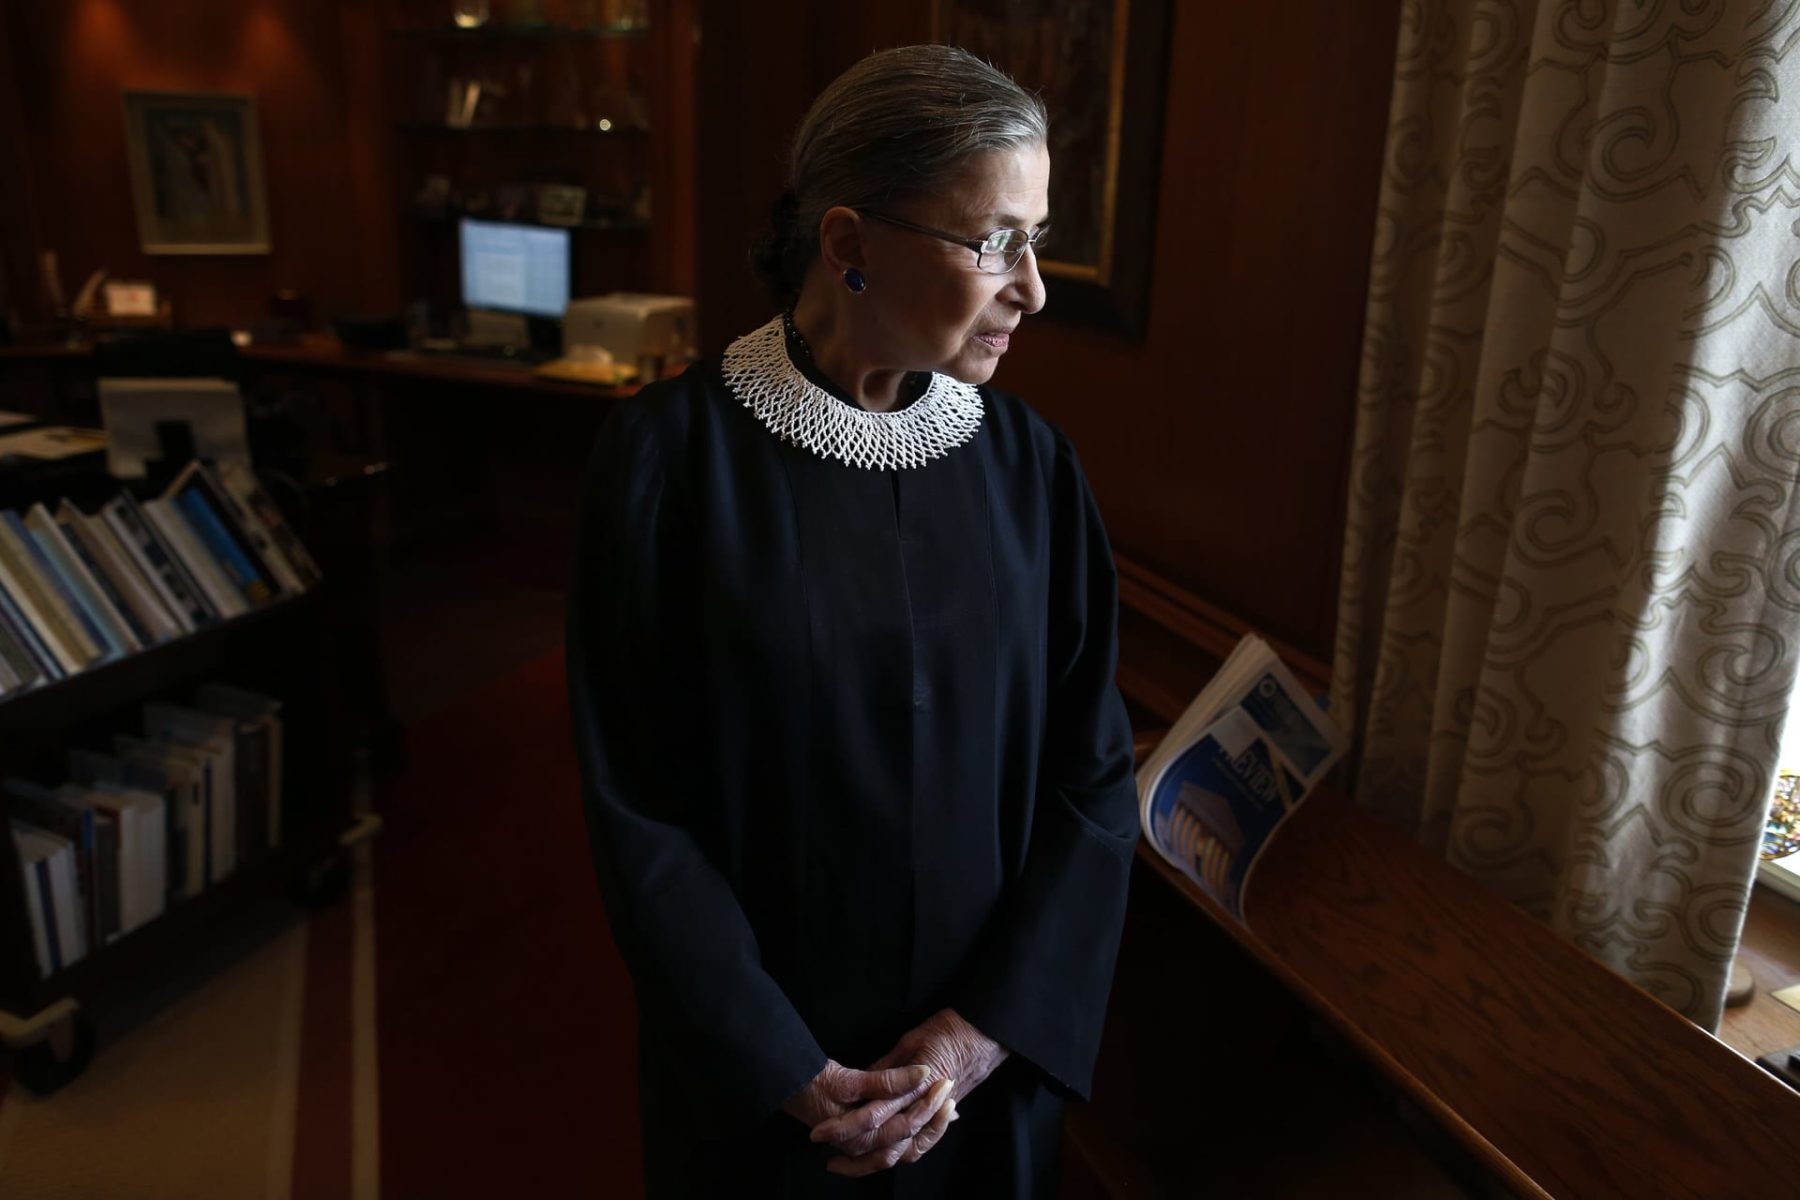 Associate Justice Ruth Bader Ginsburg poses for a photo in her chambers at the Supreme Court in Washington, Wednesday, July 24, 2013, before an interview with the Associated Press. Ginsburg said during the interview that it was easy to foresee that Southern states would push ahead with tougher voter identification laws and other measures once the Supreme Court freed them from strict federal oversight of their elections.